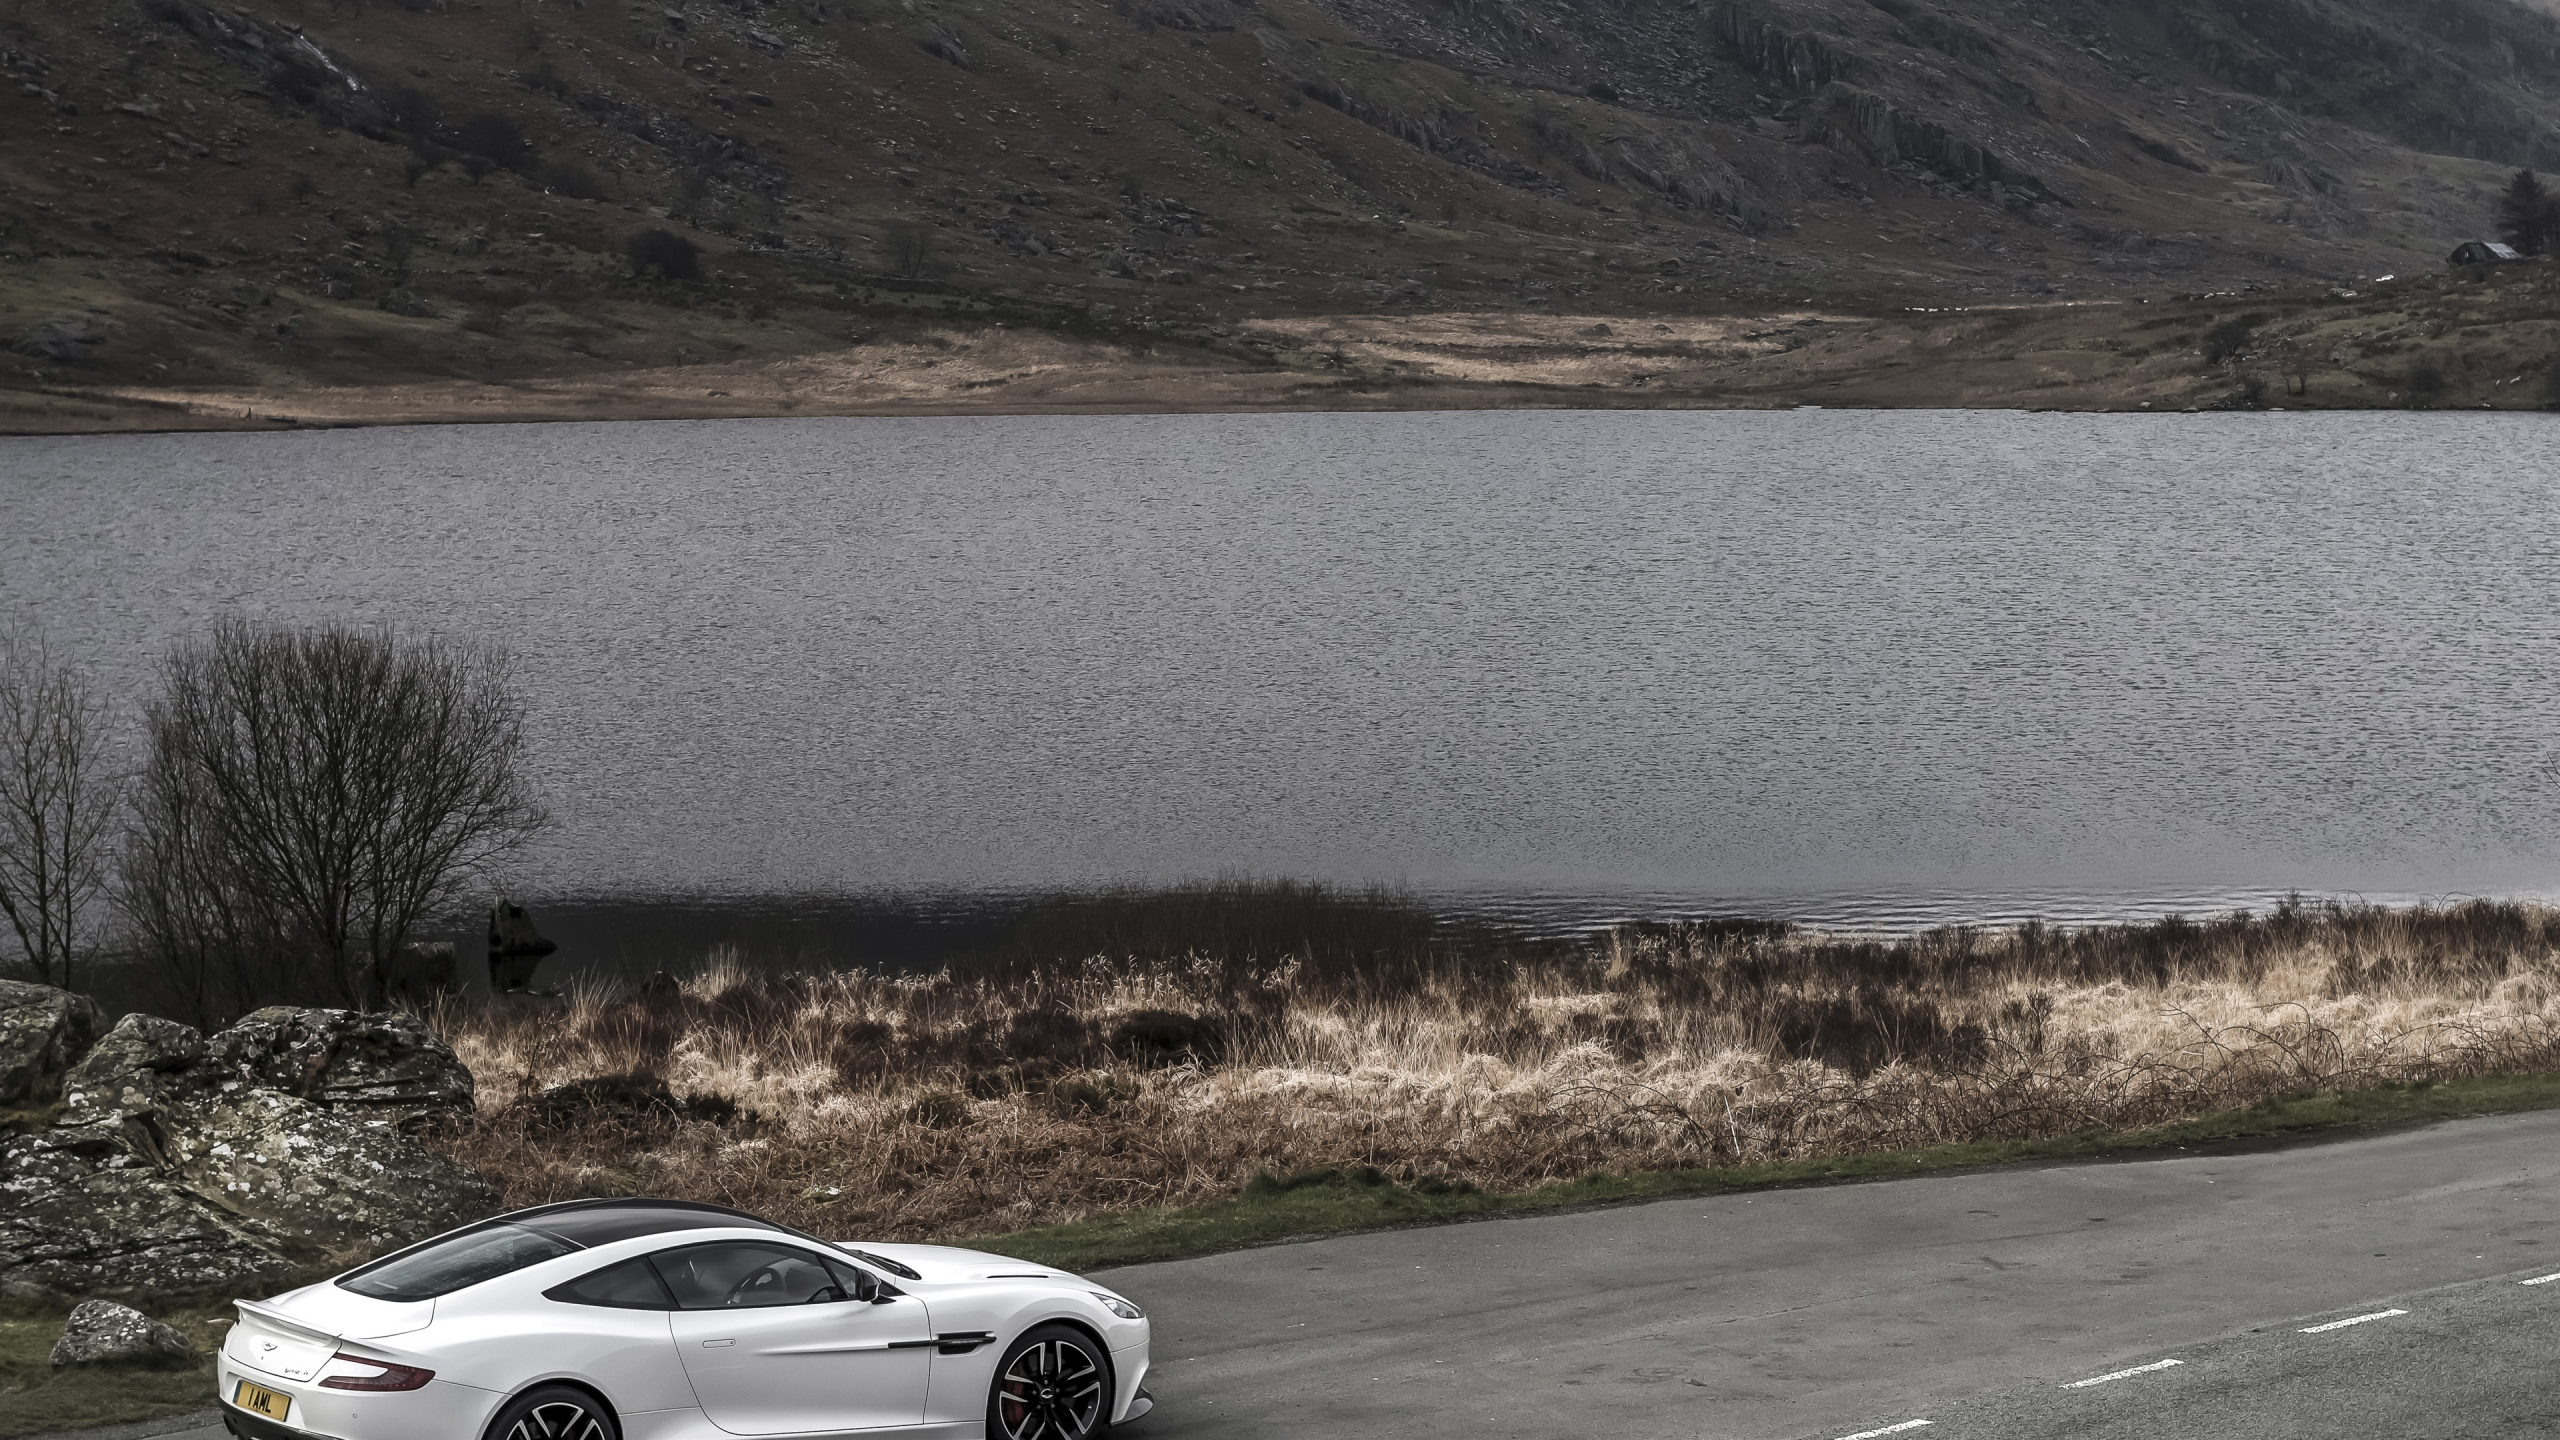 Aston Martin Vanquish Carbon White 2015 - Photo 05 - Taille: 2560x1440